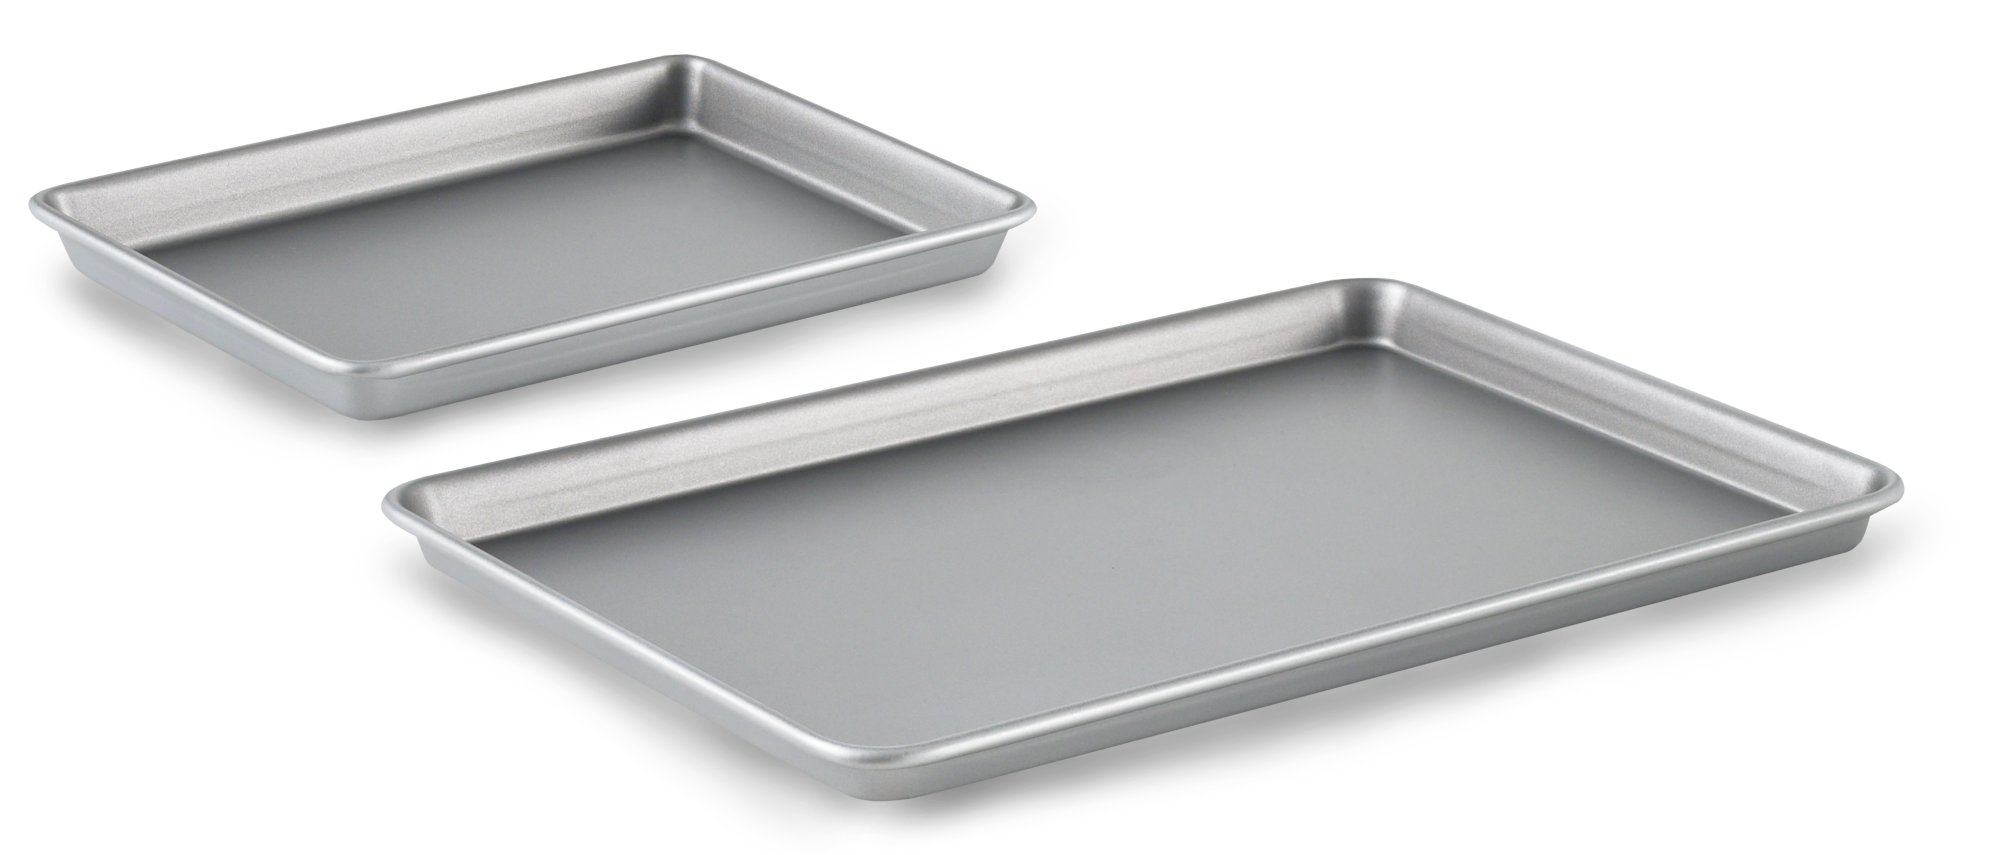 Calphalon Nonstick Bakeware 2-pc. Brownie Pan & Baking Sheet Set